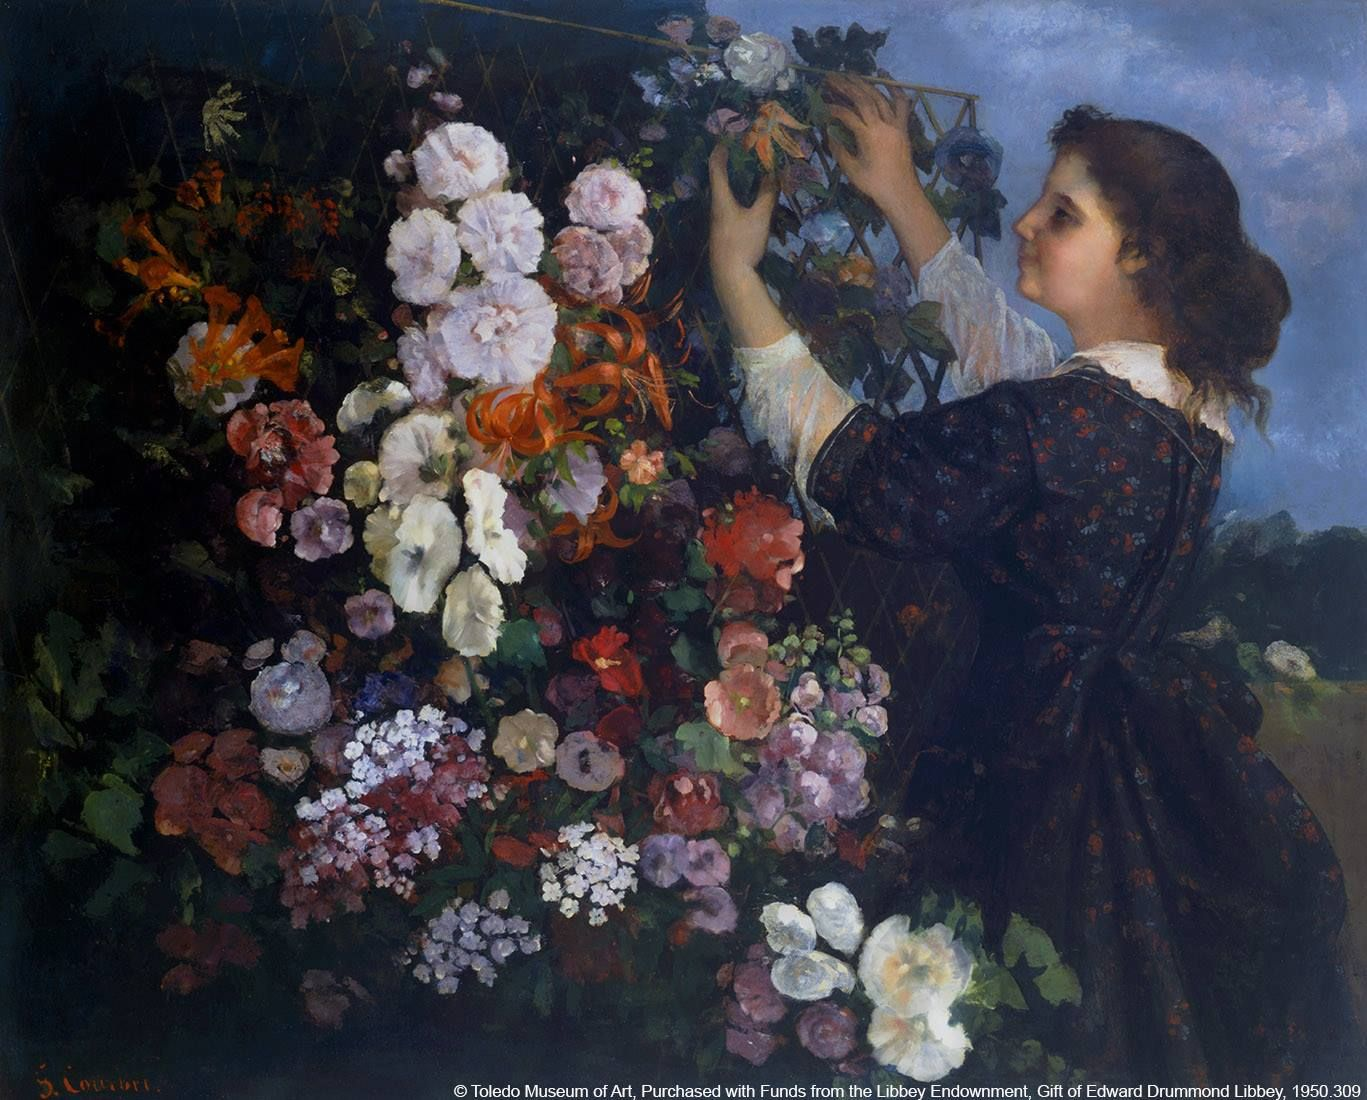 Detail from Gustave Courbet, 'The Trellis, or Young Woman arranging Flowers', 1862 © Toledo Museum of Art, Purchased with Funds from the Libbey Endowment, Gift of Edward Drummond Libbey, 1950.309